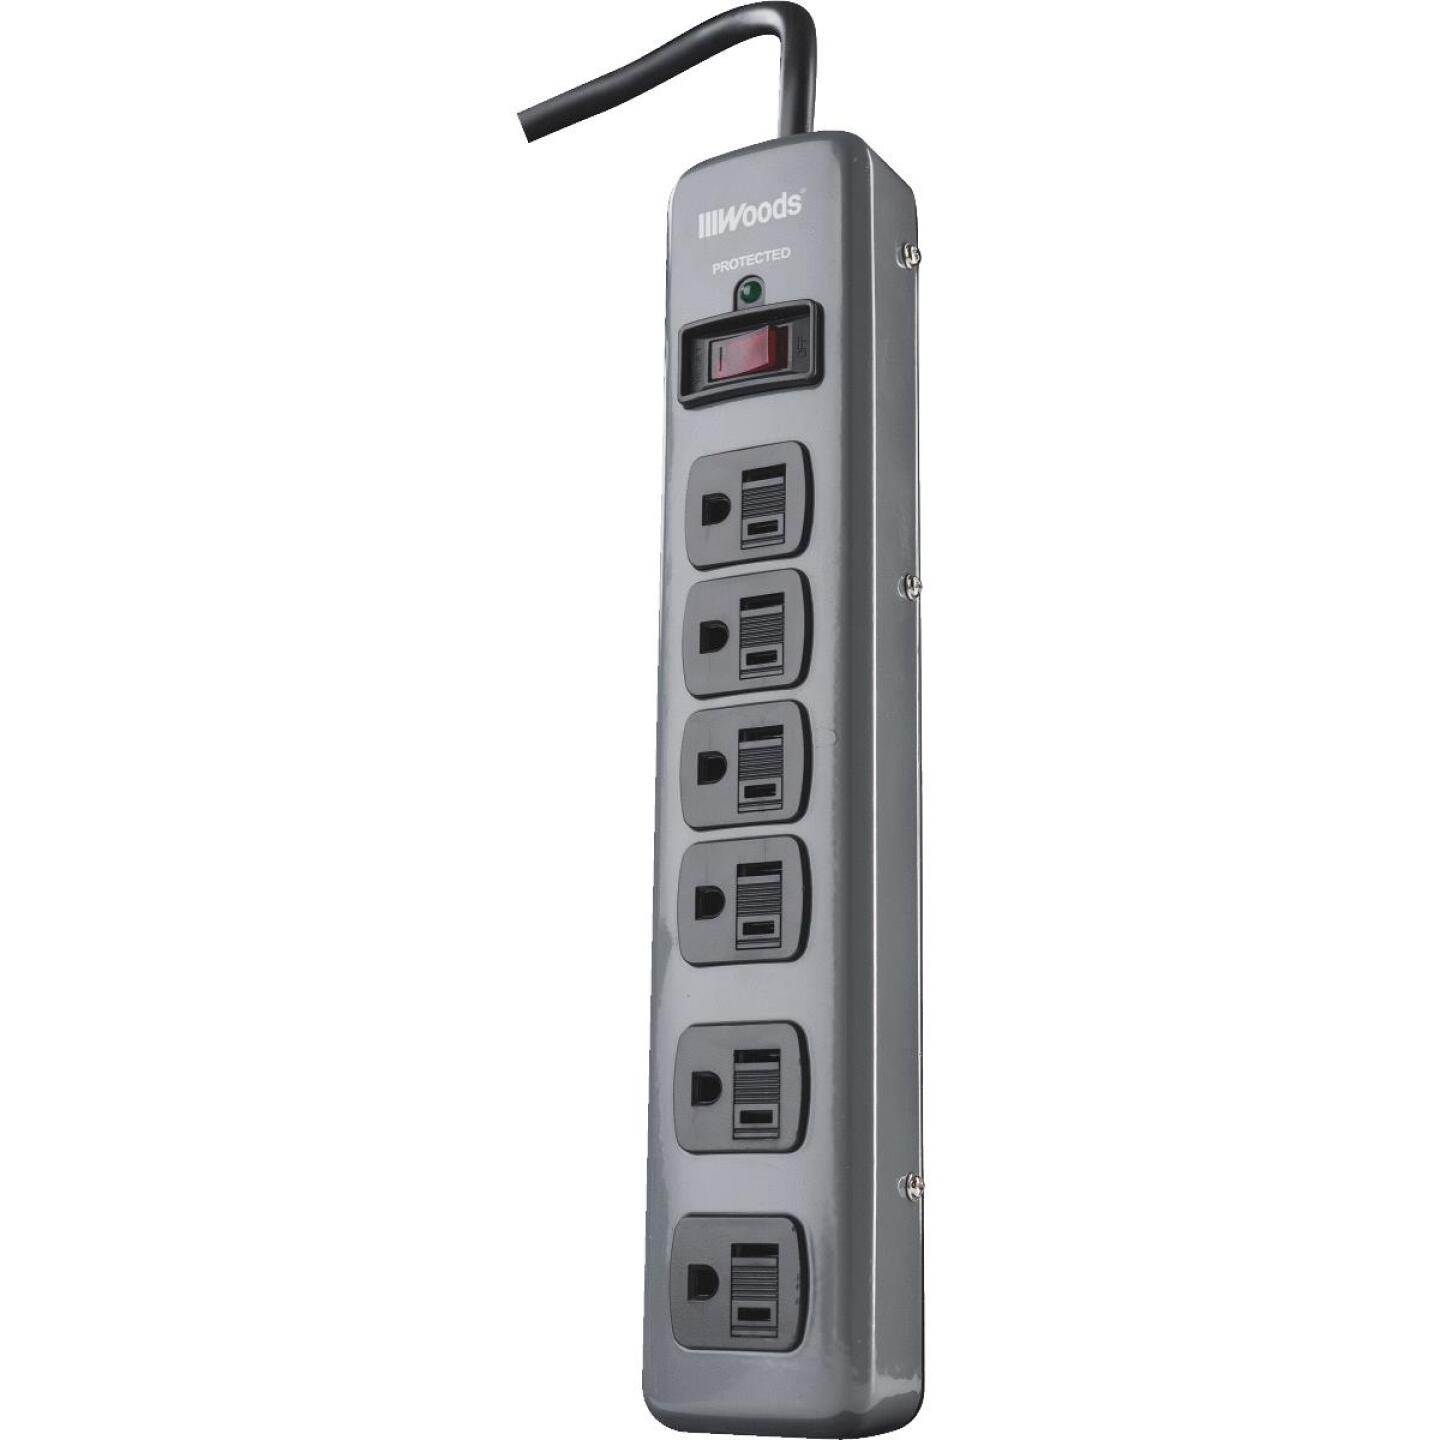 Woods 6-Outlet 900J Dark Gray Surge Protector Strip with 3 Ft. Cord Image 1